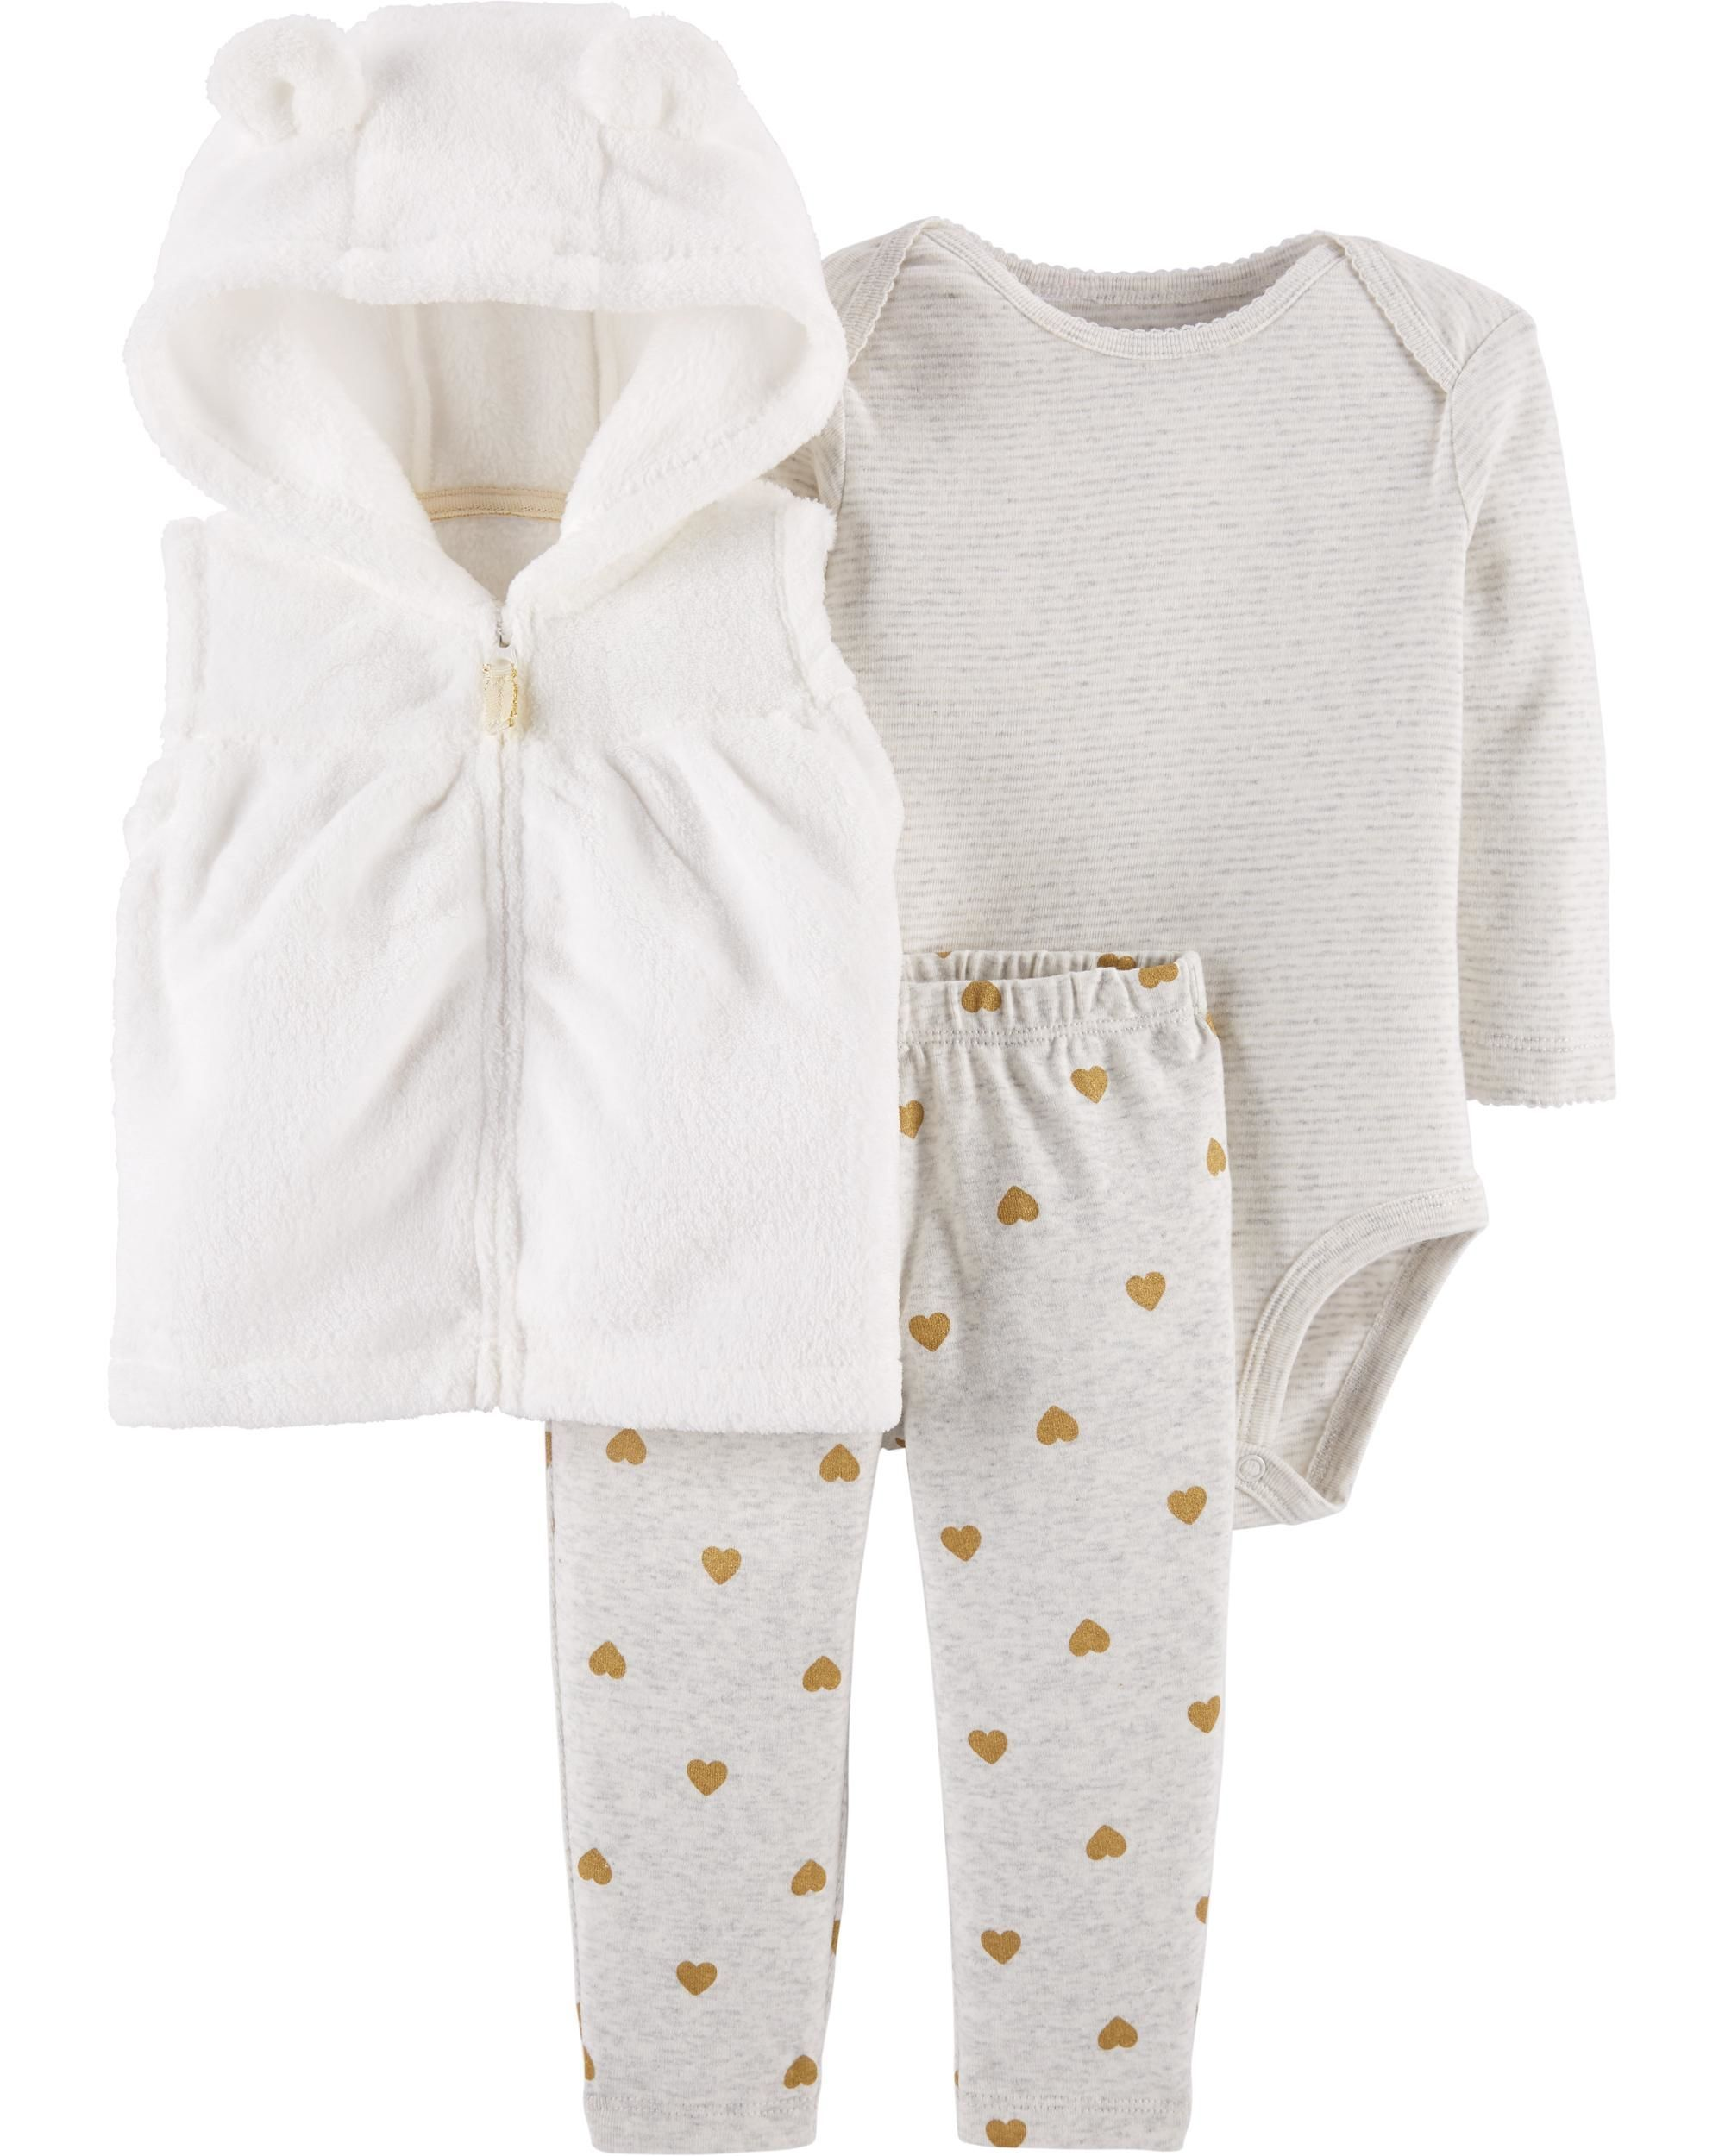 47d9a8bb9 Three essential pieces in one pack, this set features a collectible  bodysuit, coordinating cotton pants and a cute and fuzzy vest to make  layering easy!